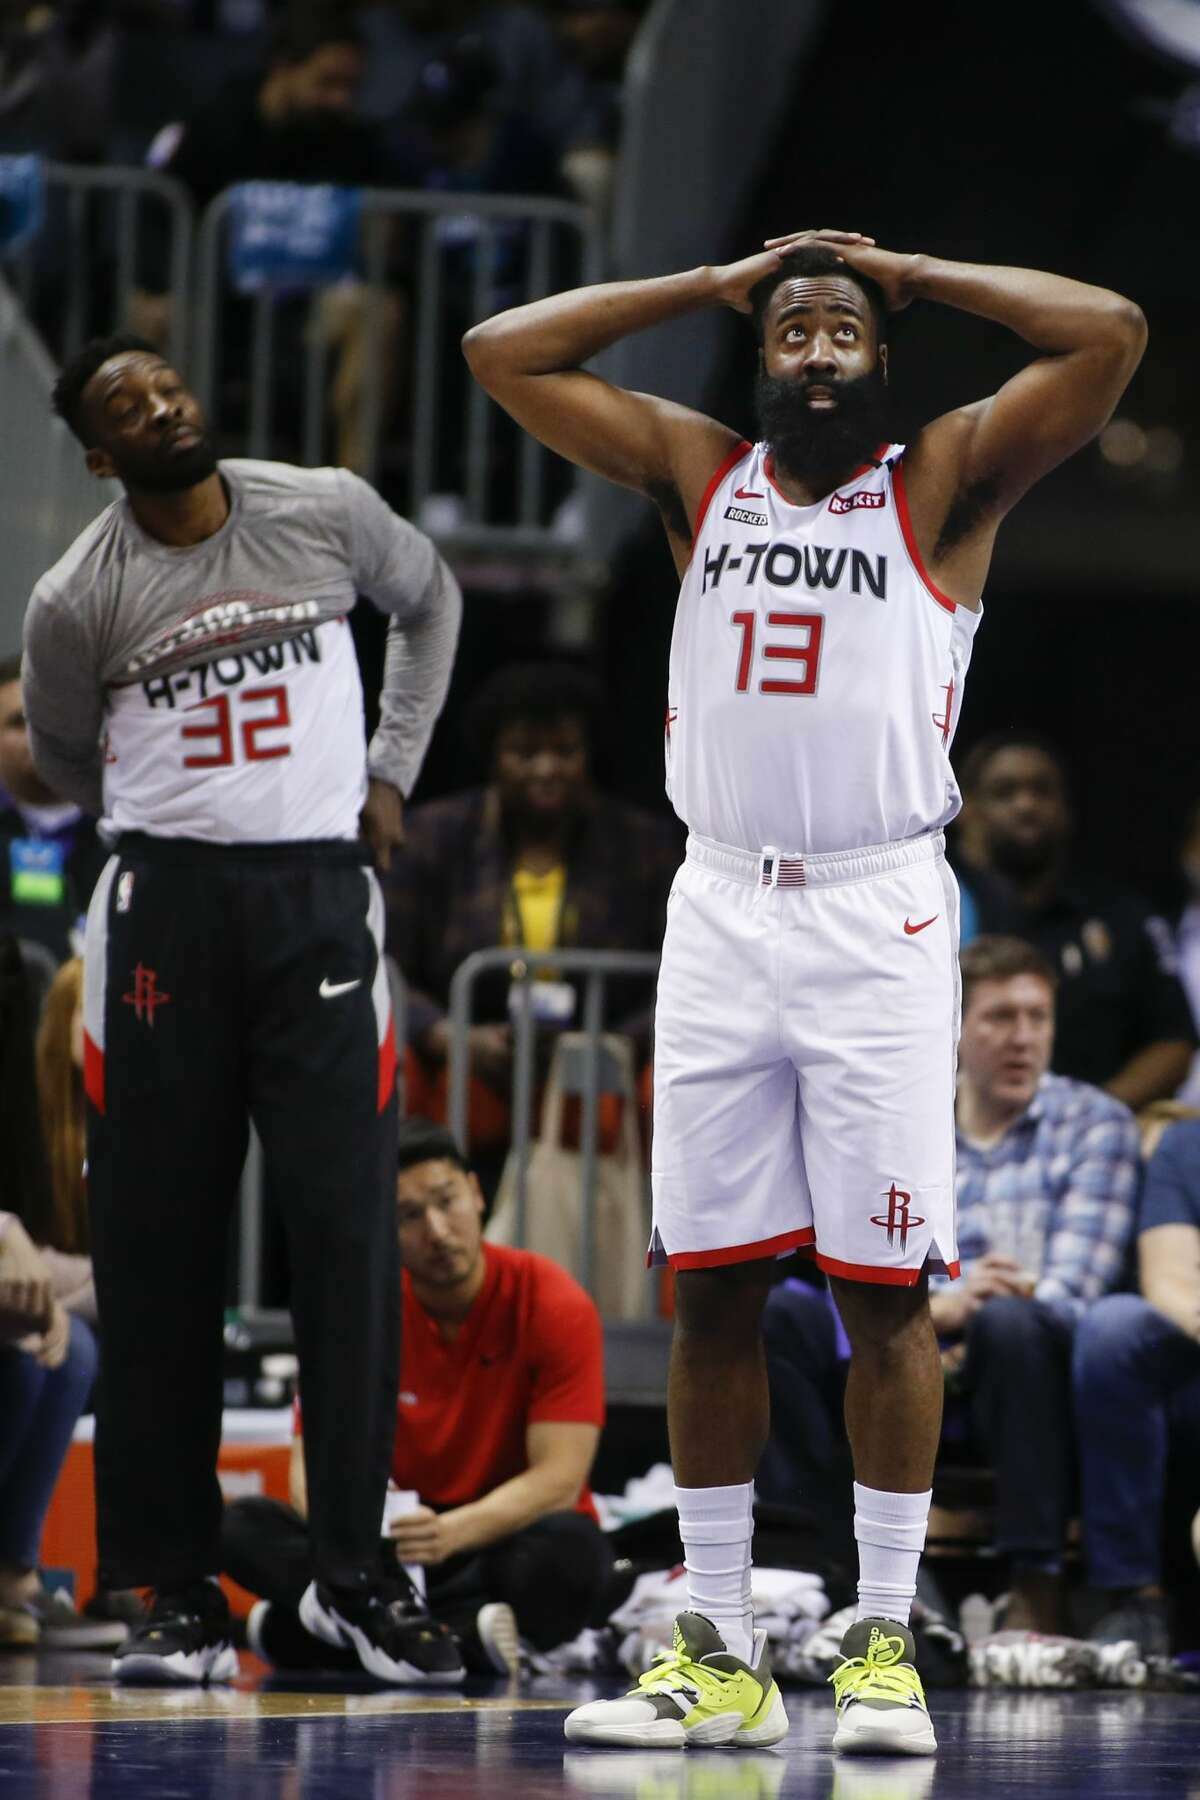 Houston Rockets guard James Harden (13) reacts after being called for a foul against the Charlotte Hornets during the second half of an NBA basketball game in Charlotte, N.C., Saturday, March 7, 2020. (AP Photo/Nell Redmond)